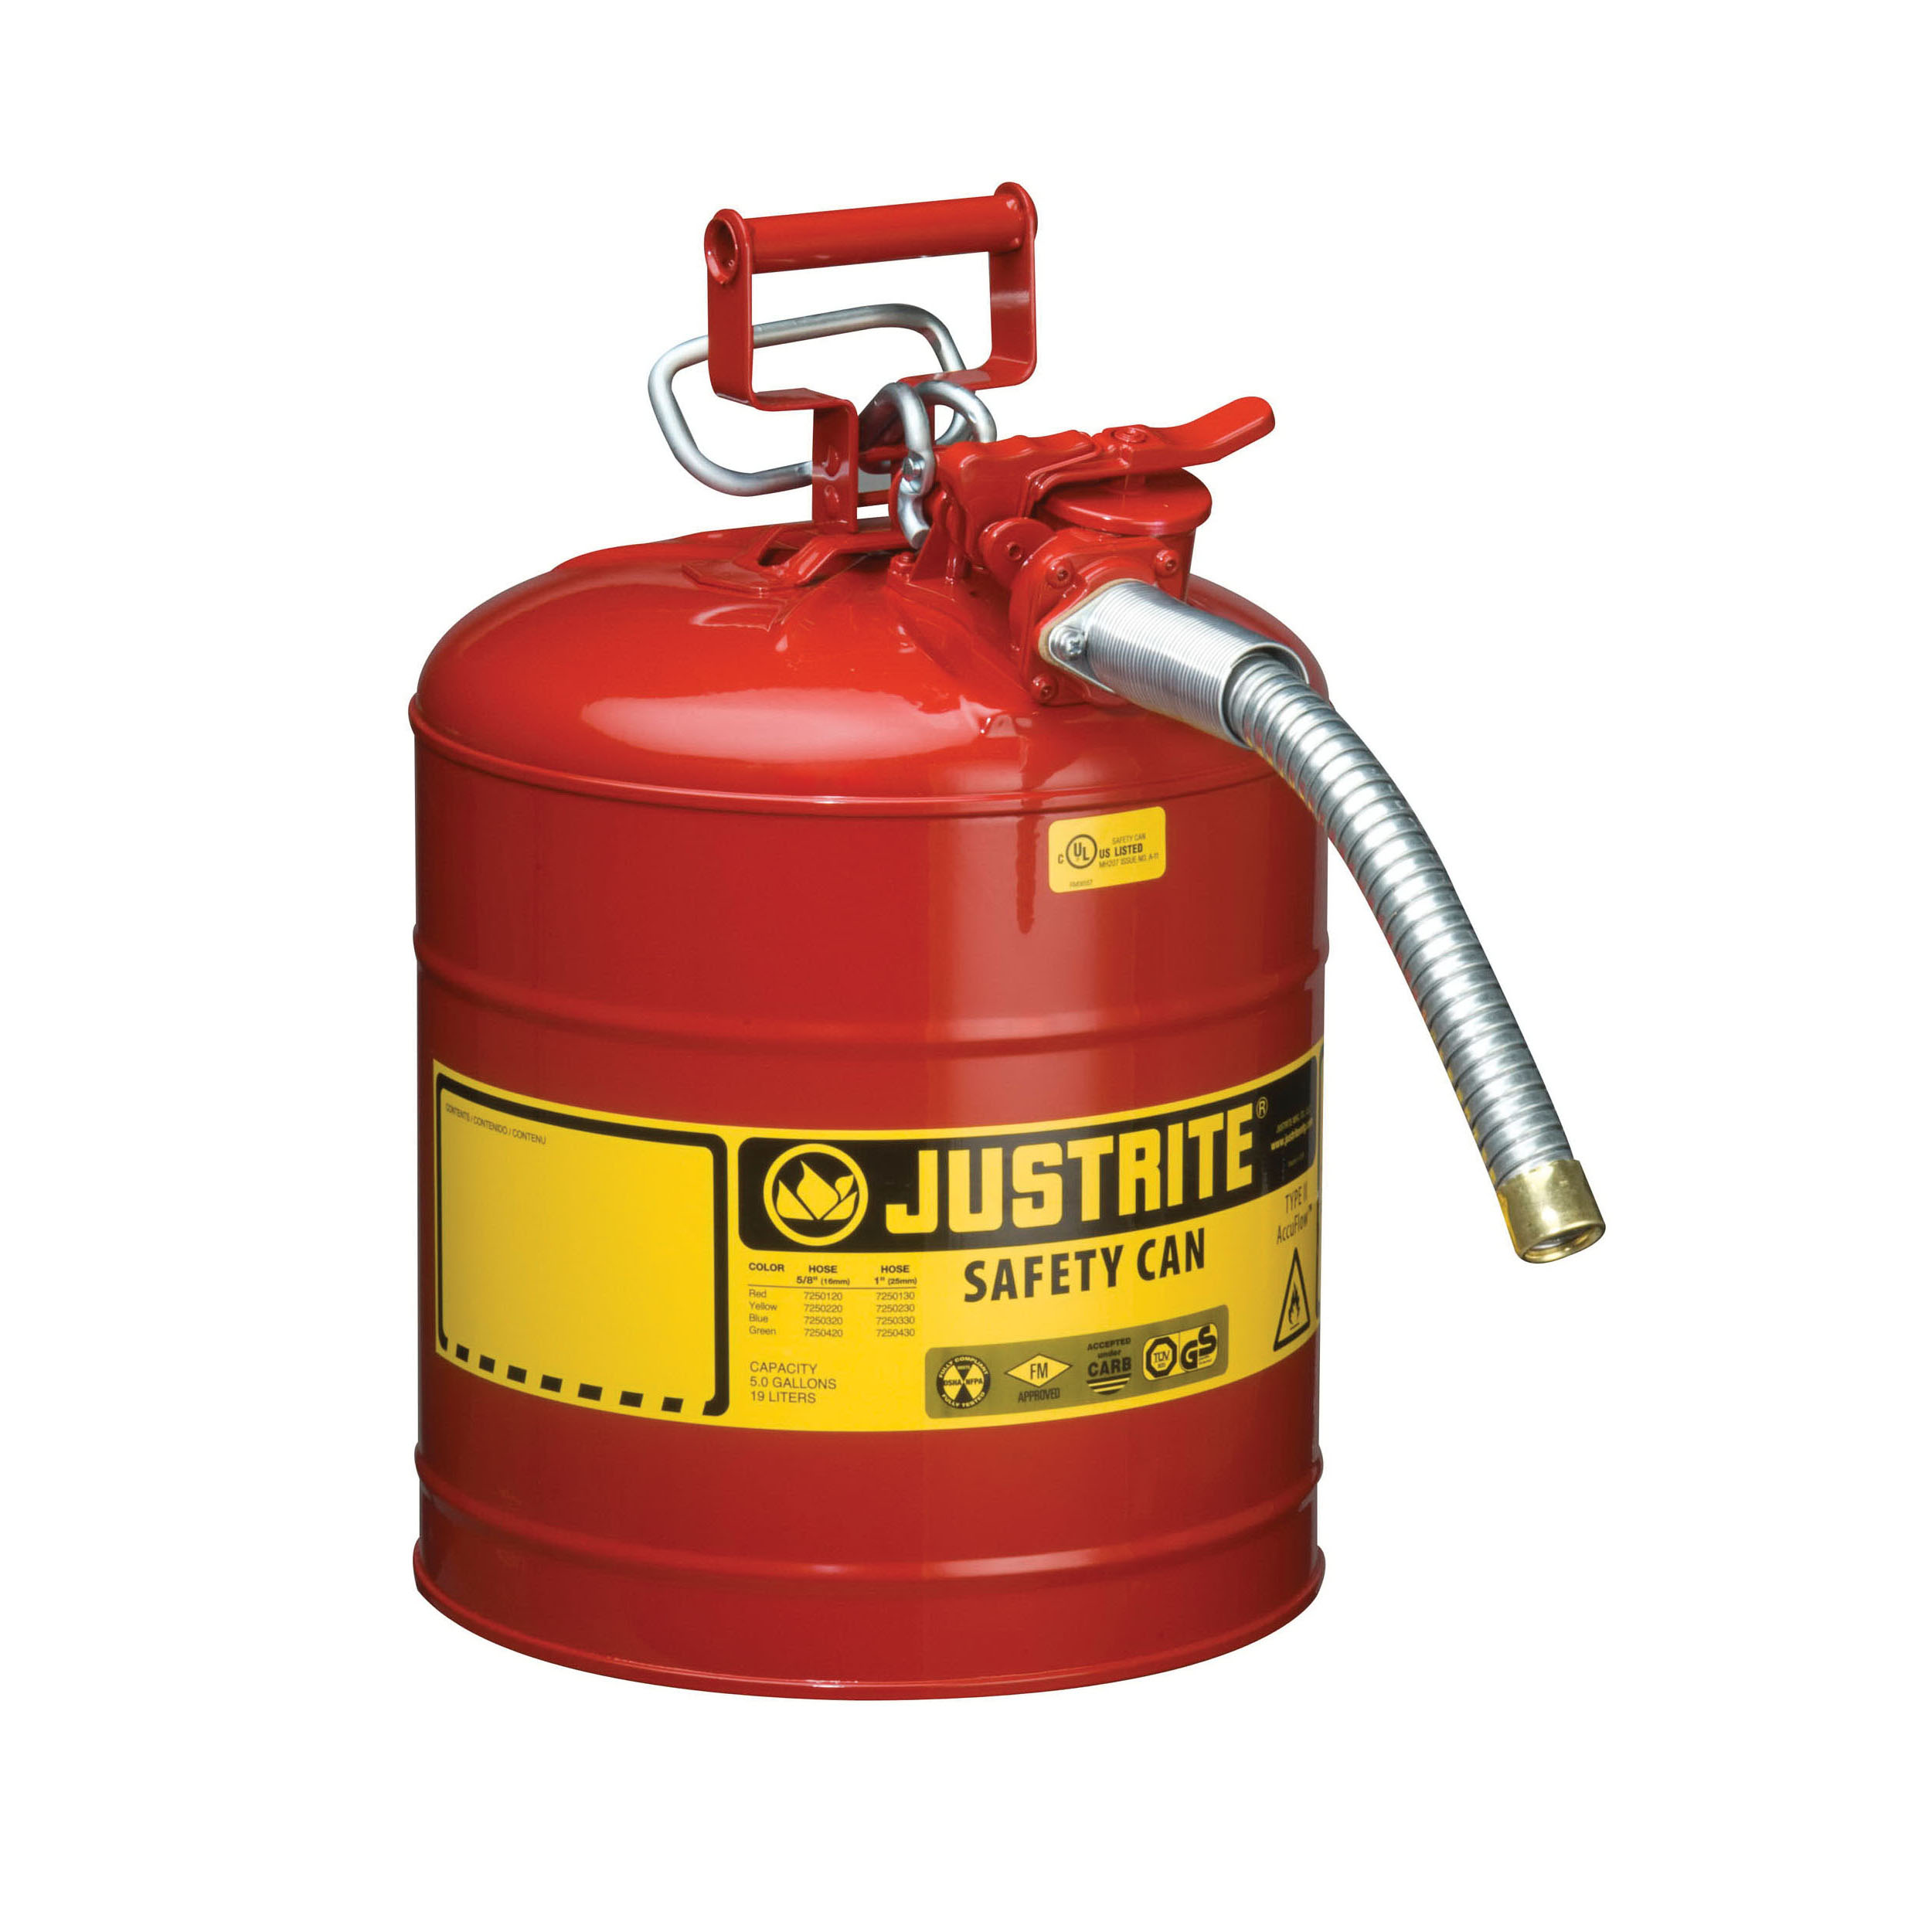 Justrite® Accuflow™ 7250130 Type II Safety Can With 1 in OD x 9 in L Metal Hose and Stainless Steel Flame Arrester, 5 gal Capacity, 11-3/4 in Dia x 17-1/2 in H, Steel, Red